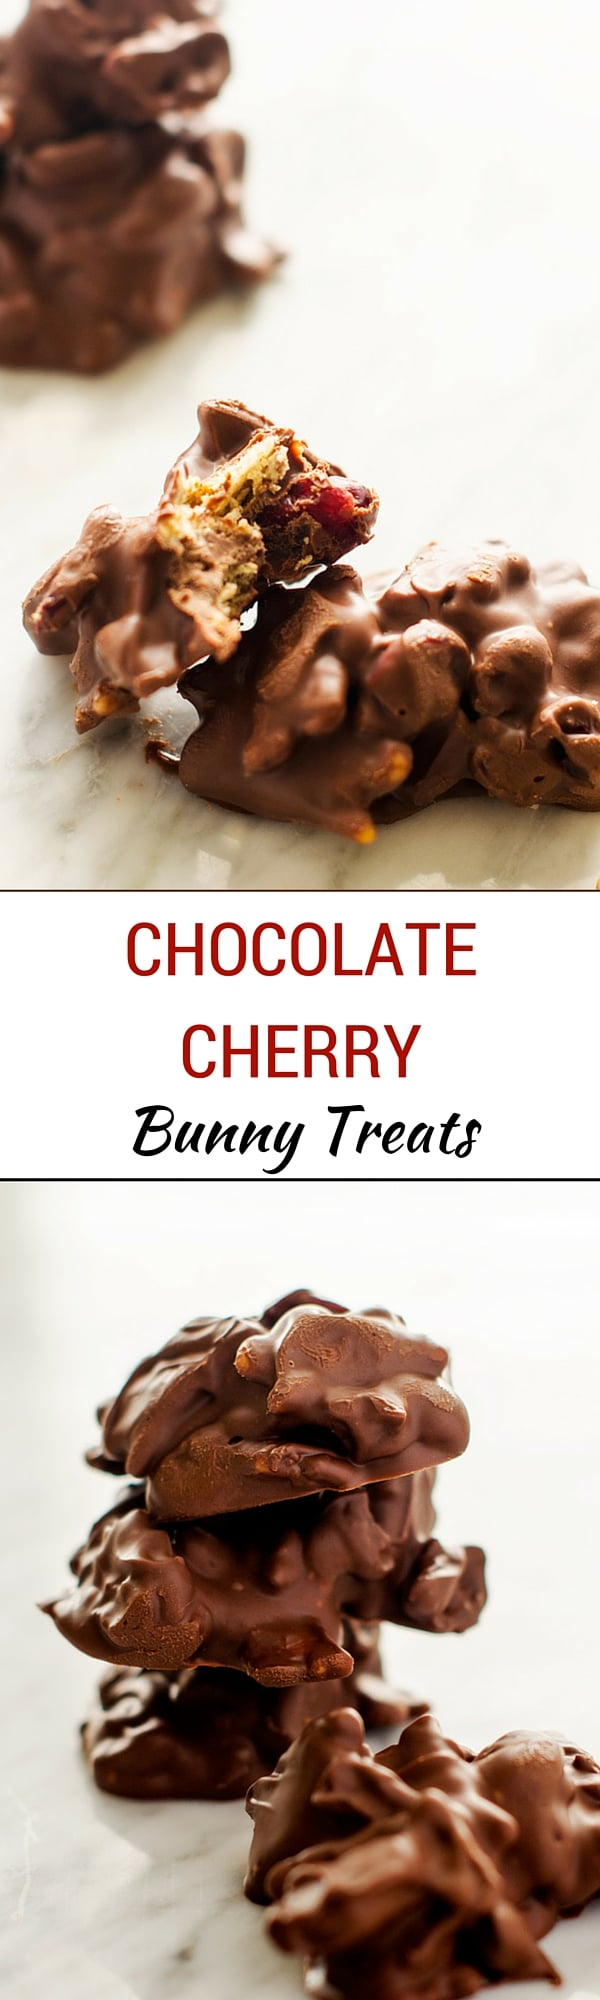 Chocolate Cherry Bunny Treats